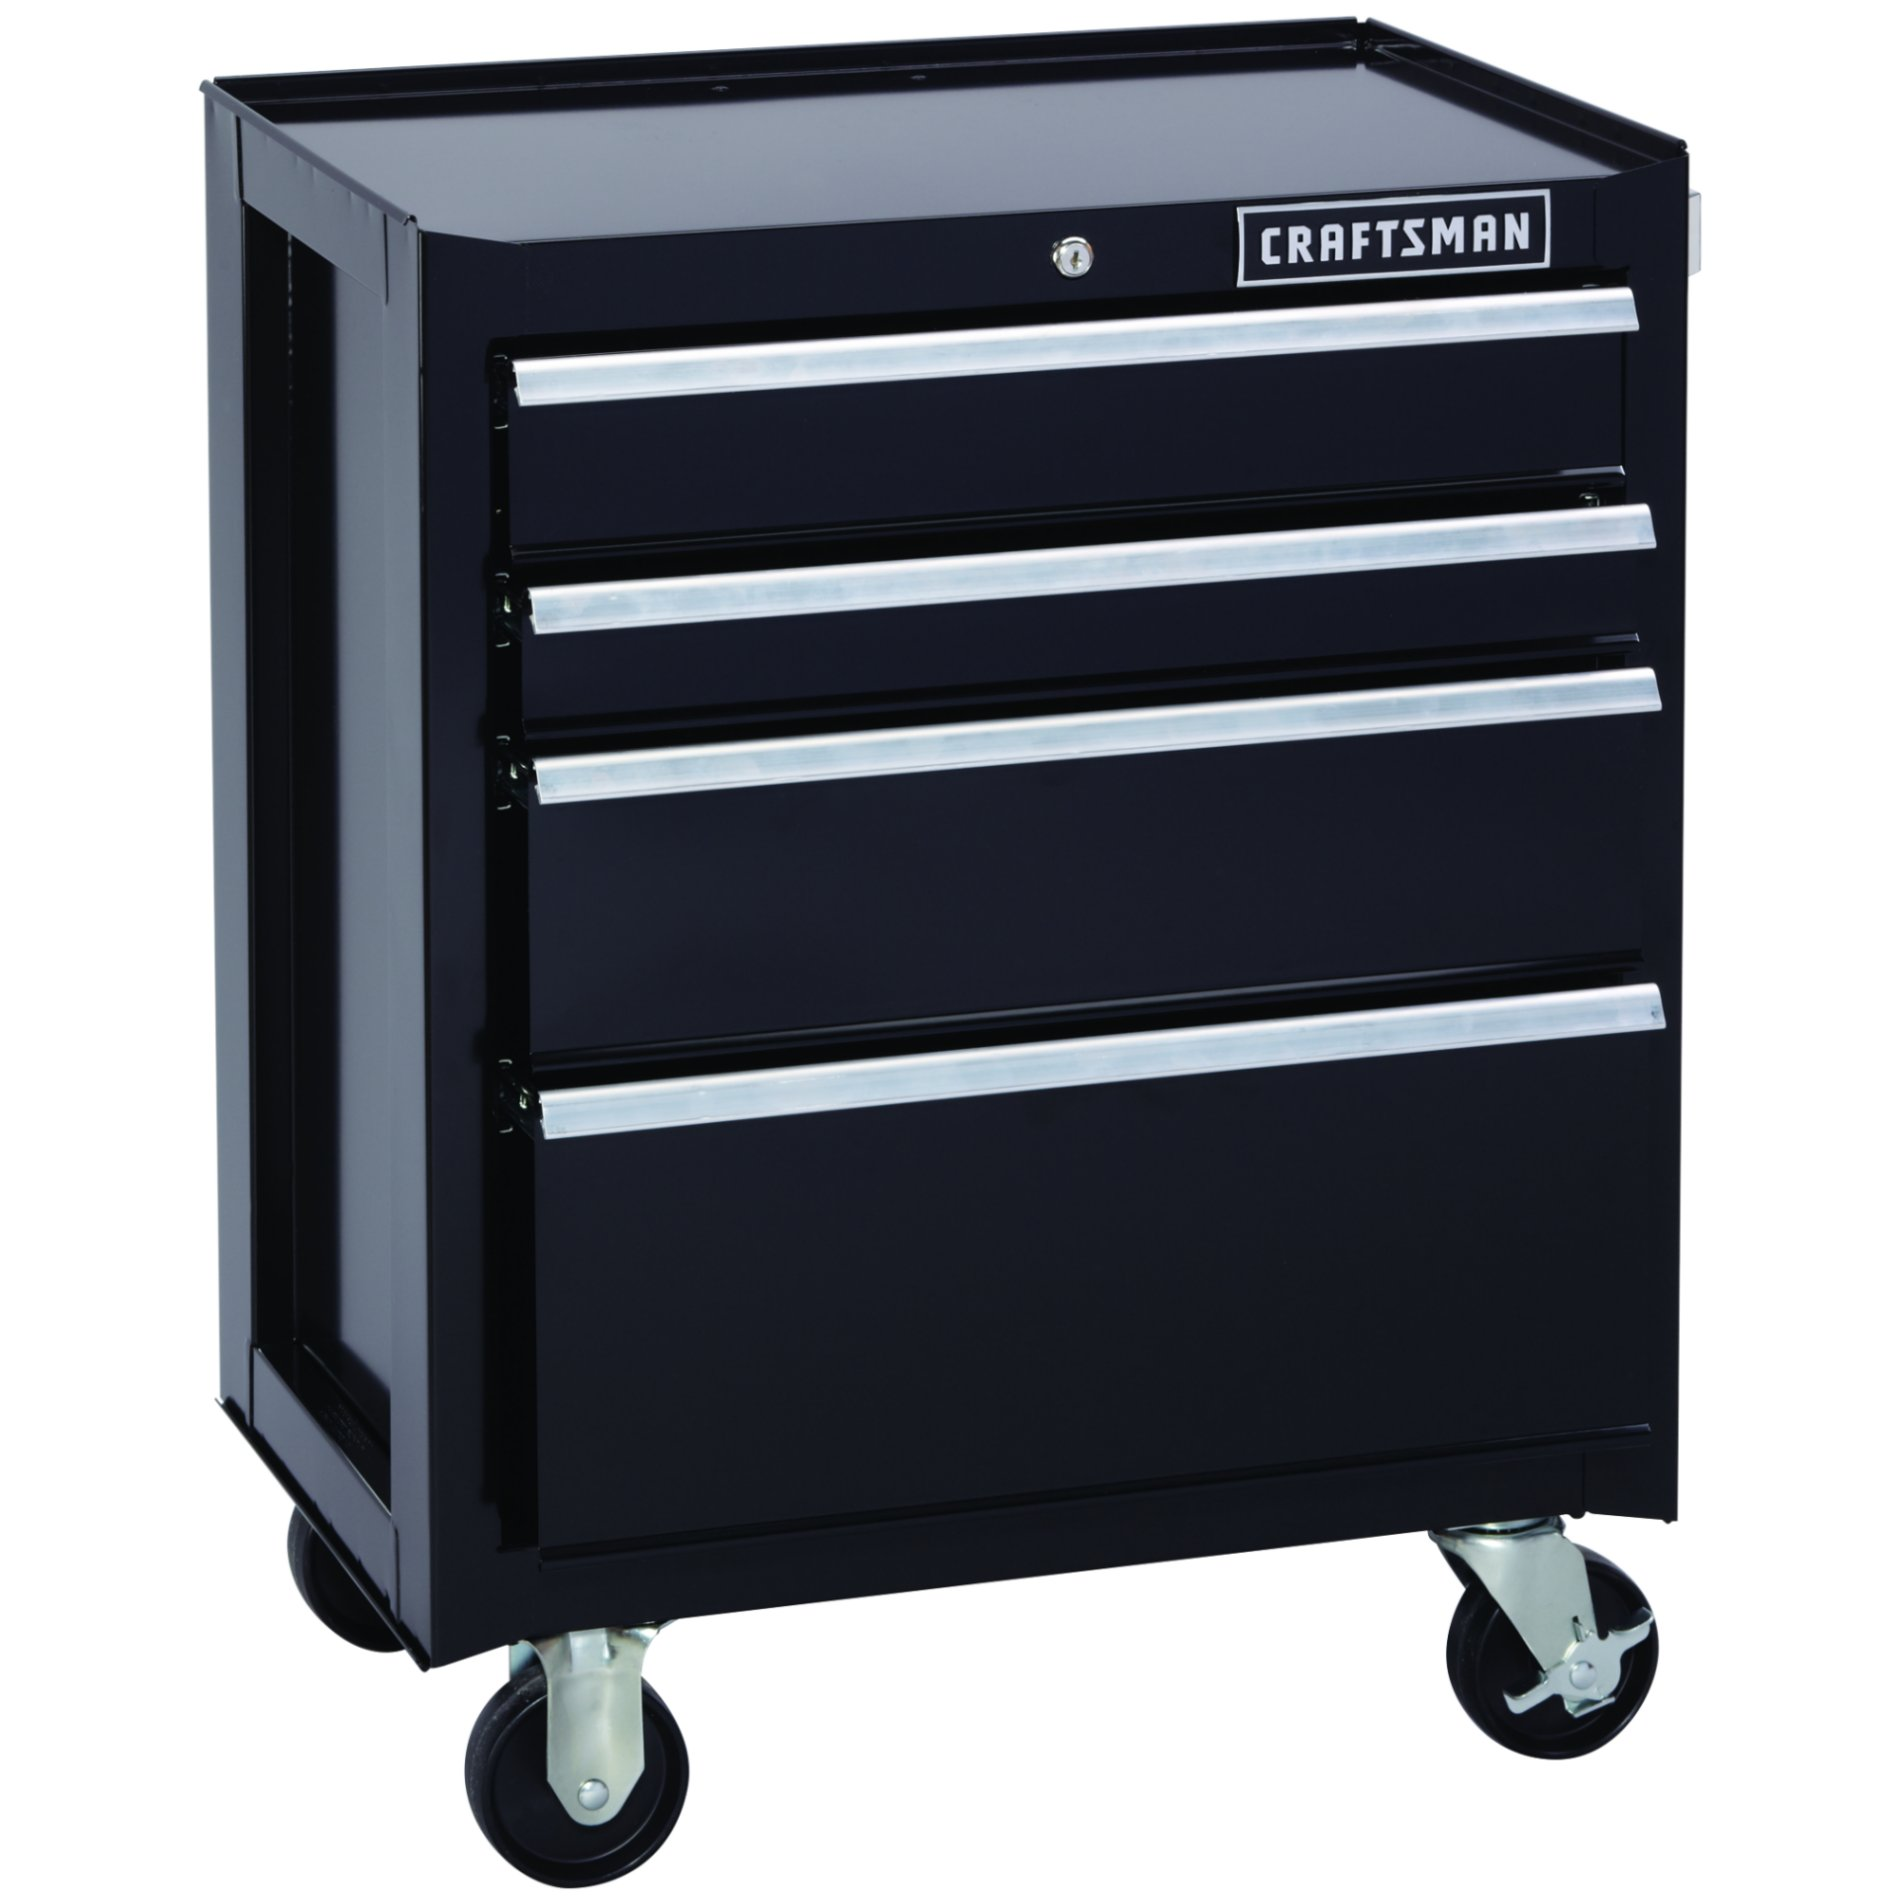 Craftsman 26.5 in. Wide 4 Drawer Wide Bottom Chest, Black